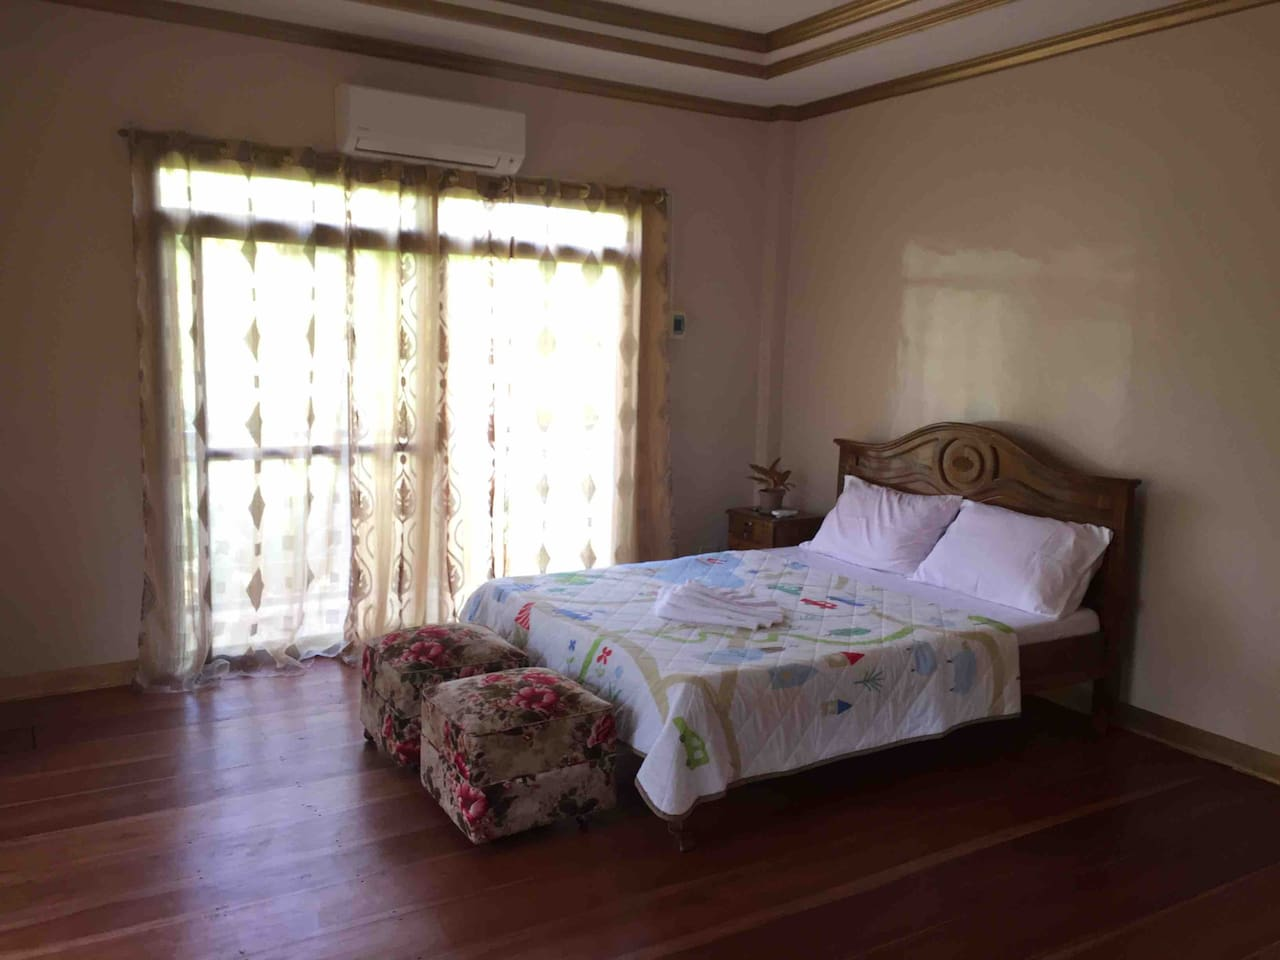 1 Queen-size Bed, fully air-conditioned room